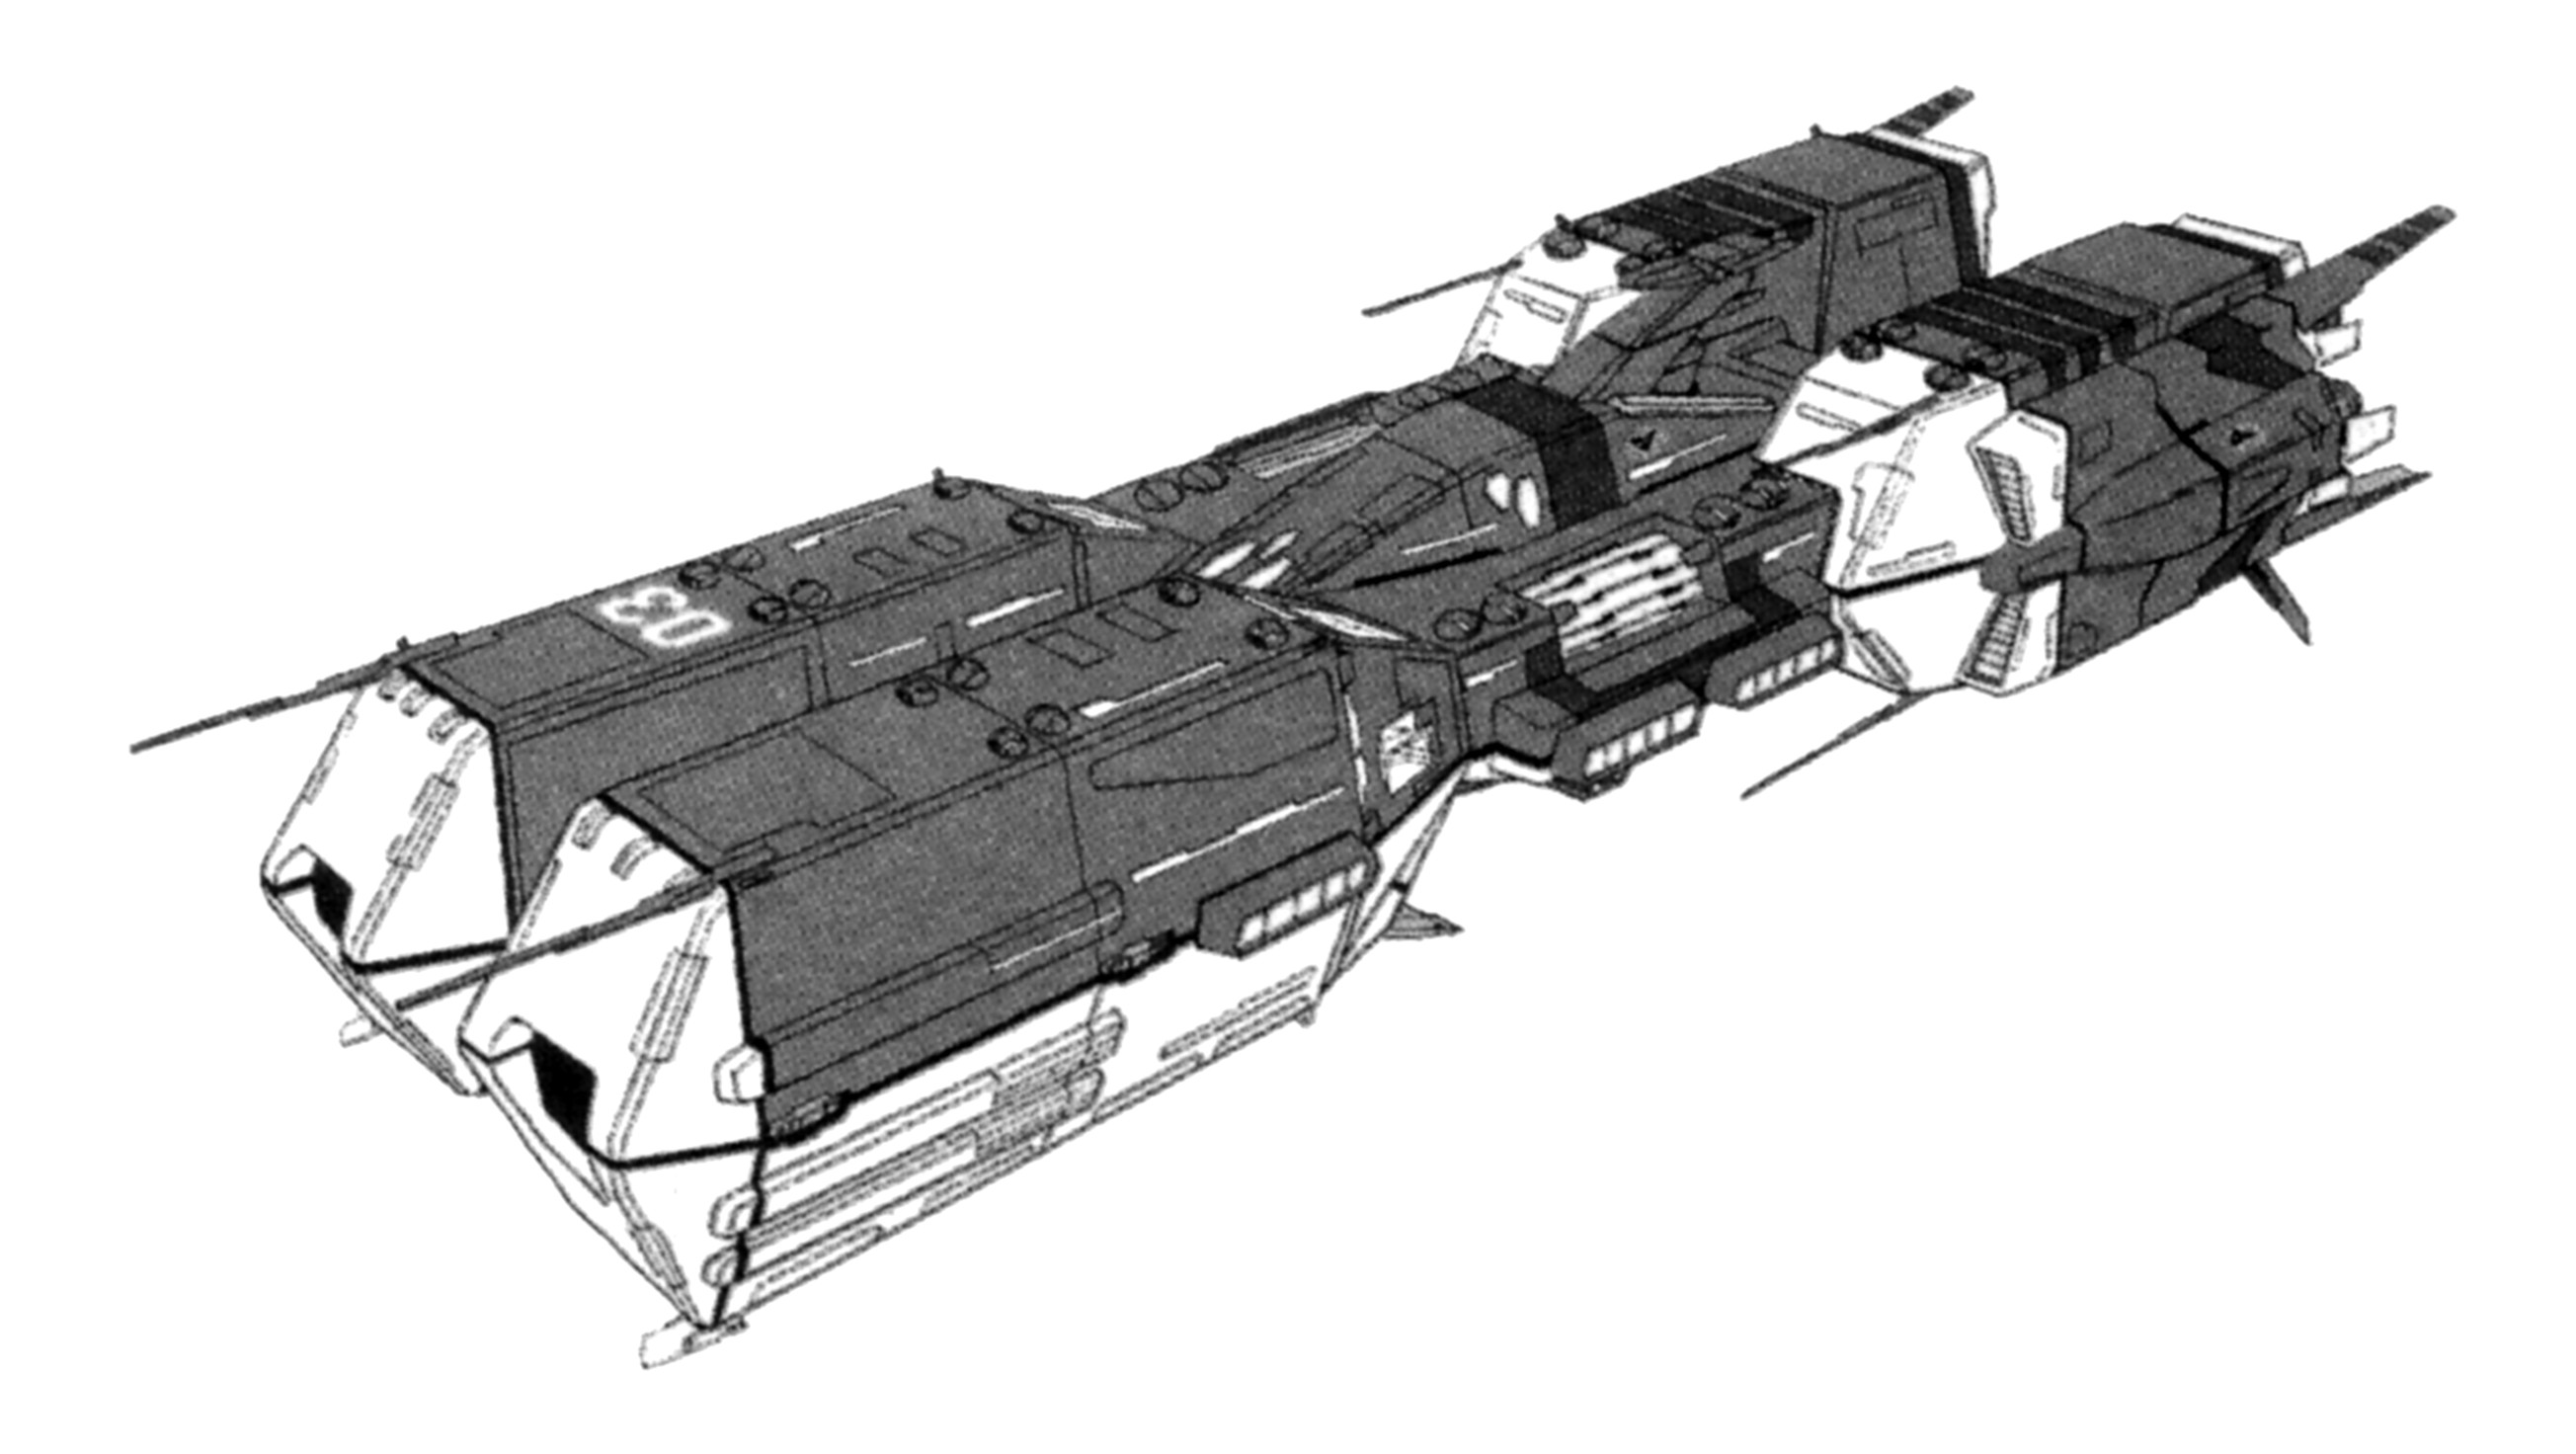 Pioneer-class Super Dimensional Fortress refit 1A